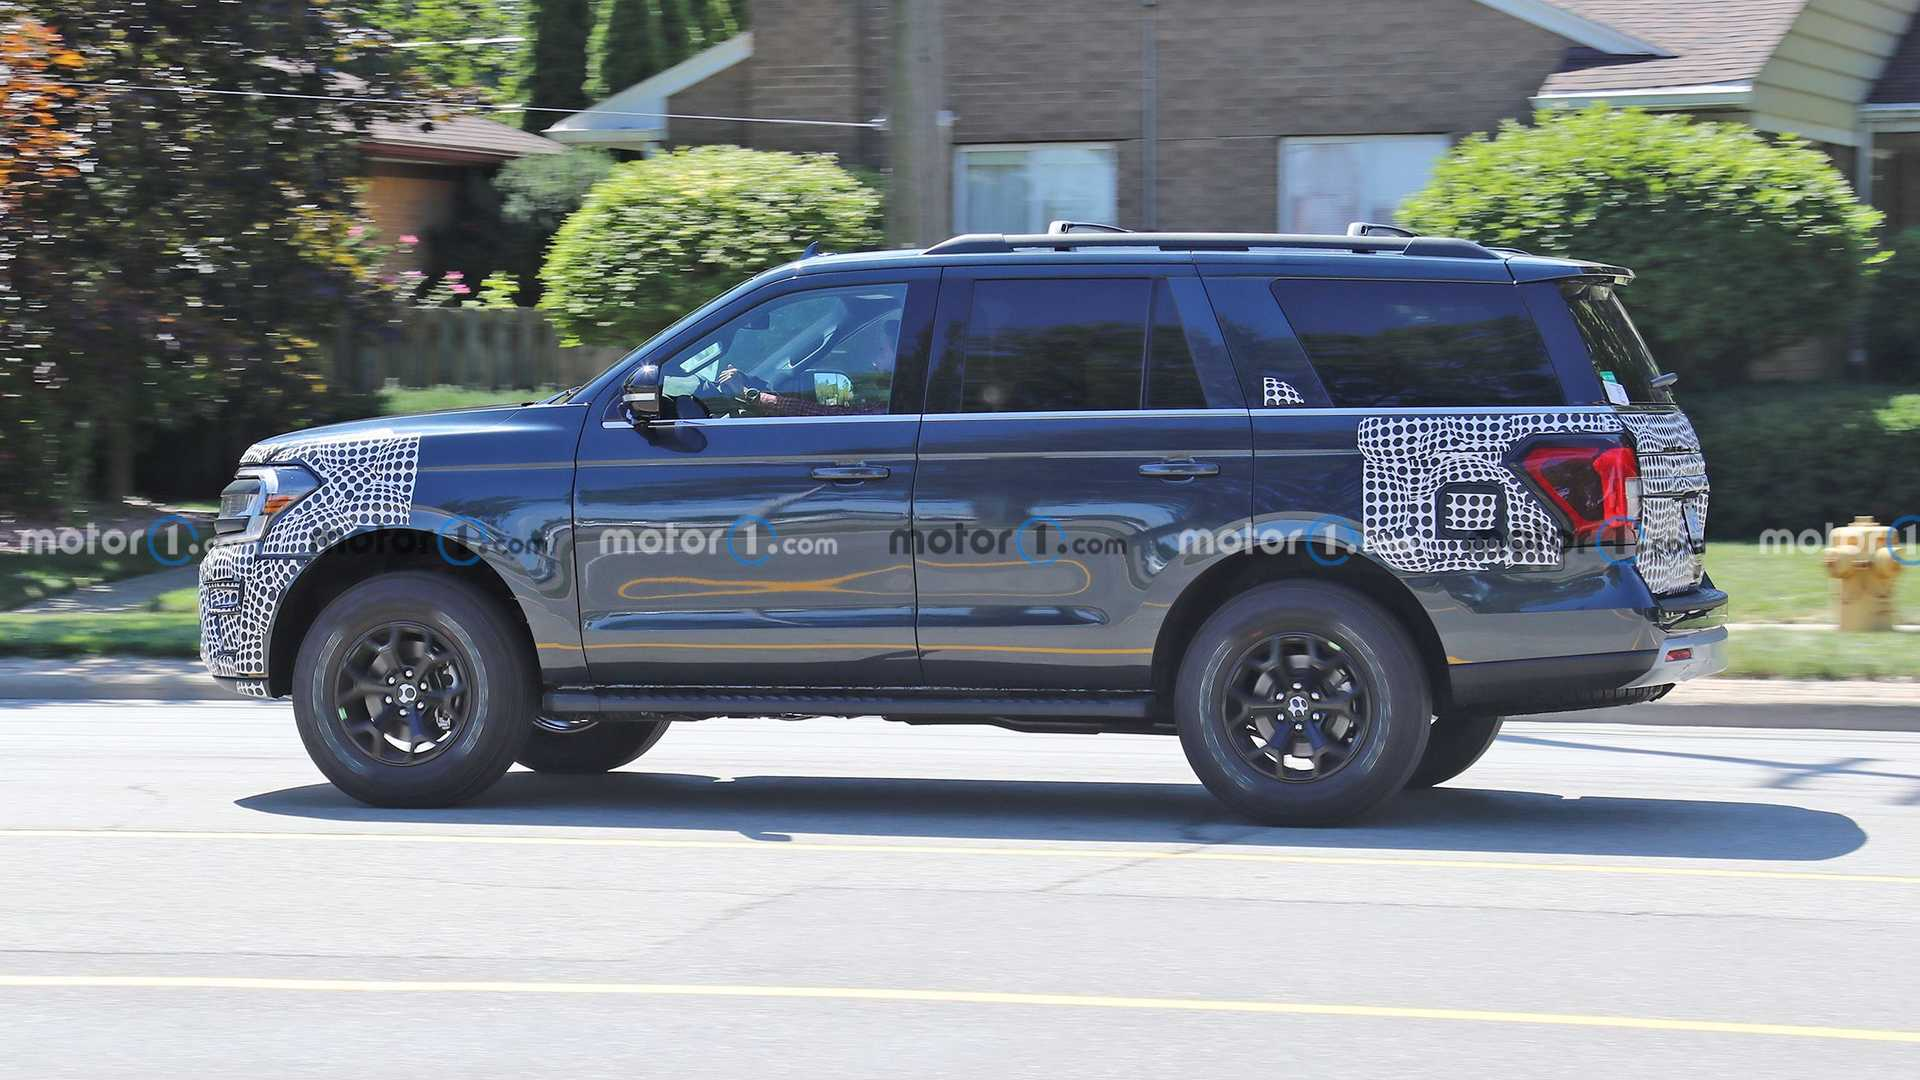 https://cdn.motor1.com/images/mgl/O6QXR/s6/2022-ford-expedition-timberline-new-spy-photo.jpg